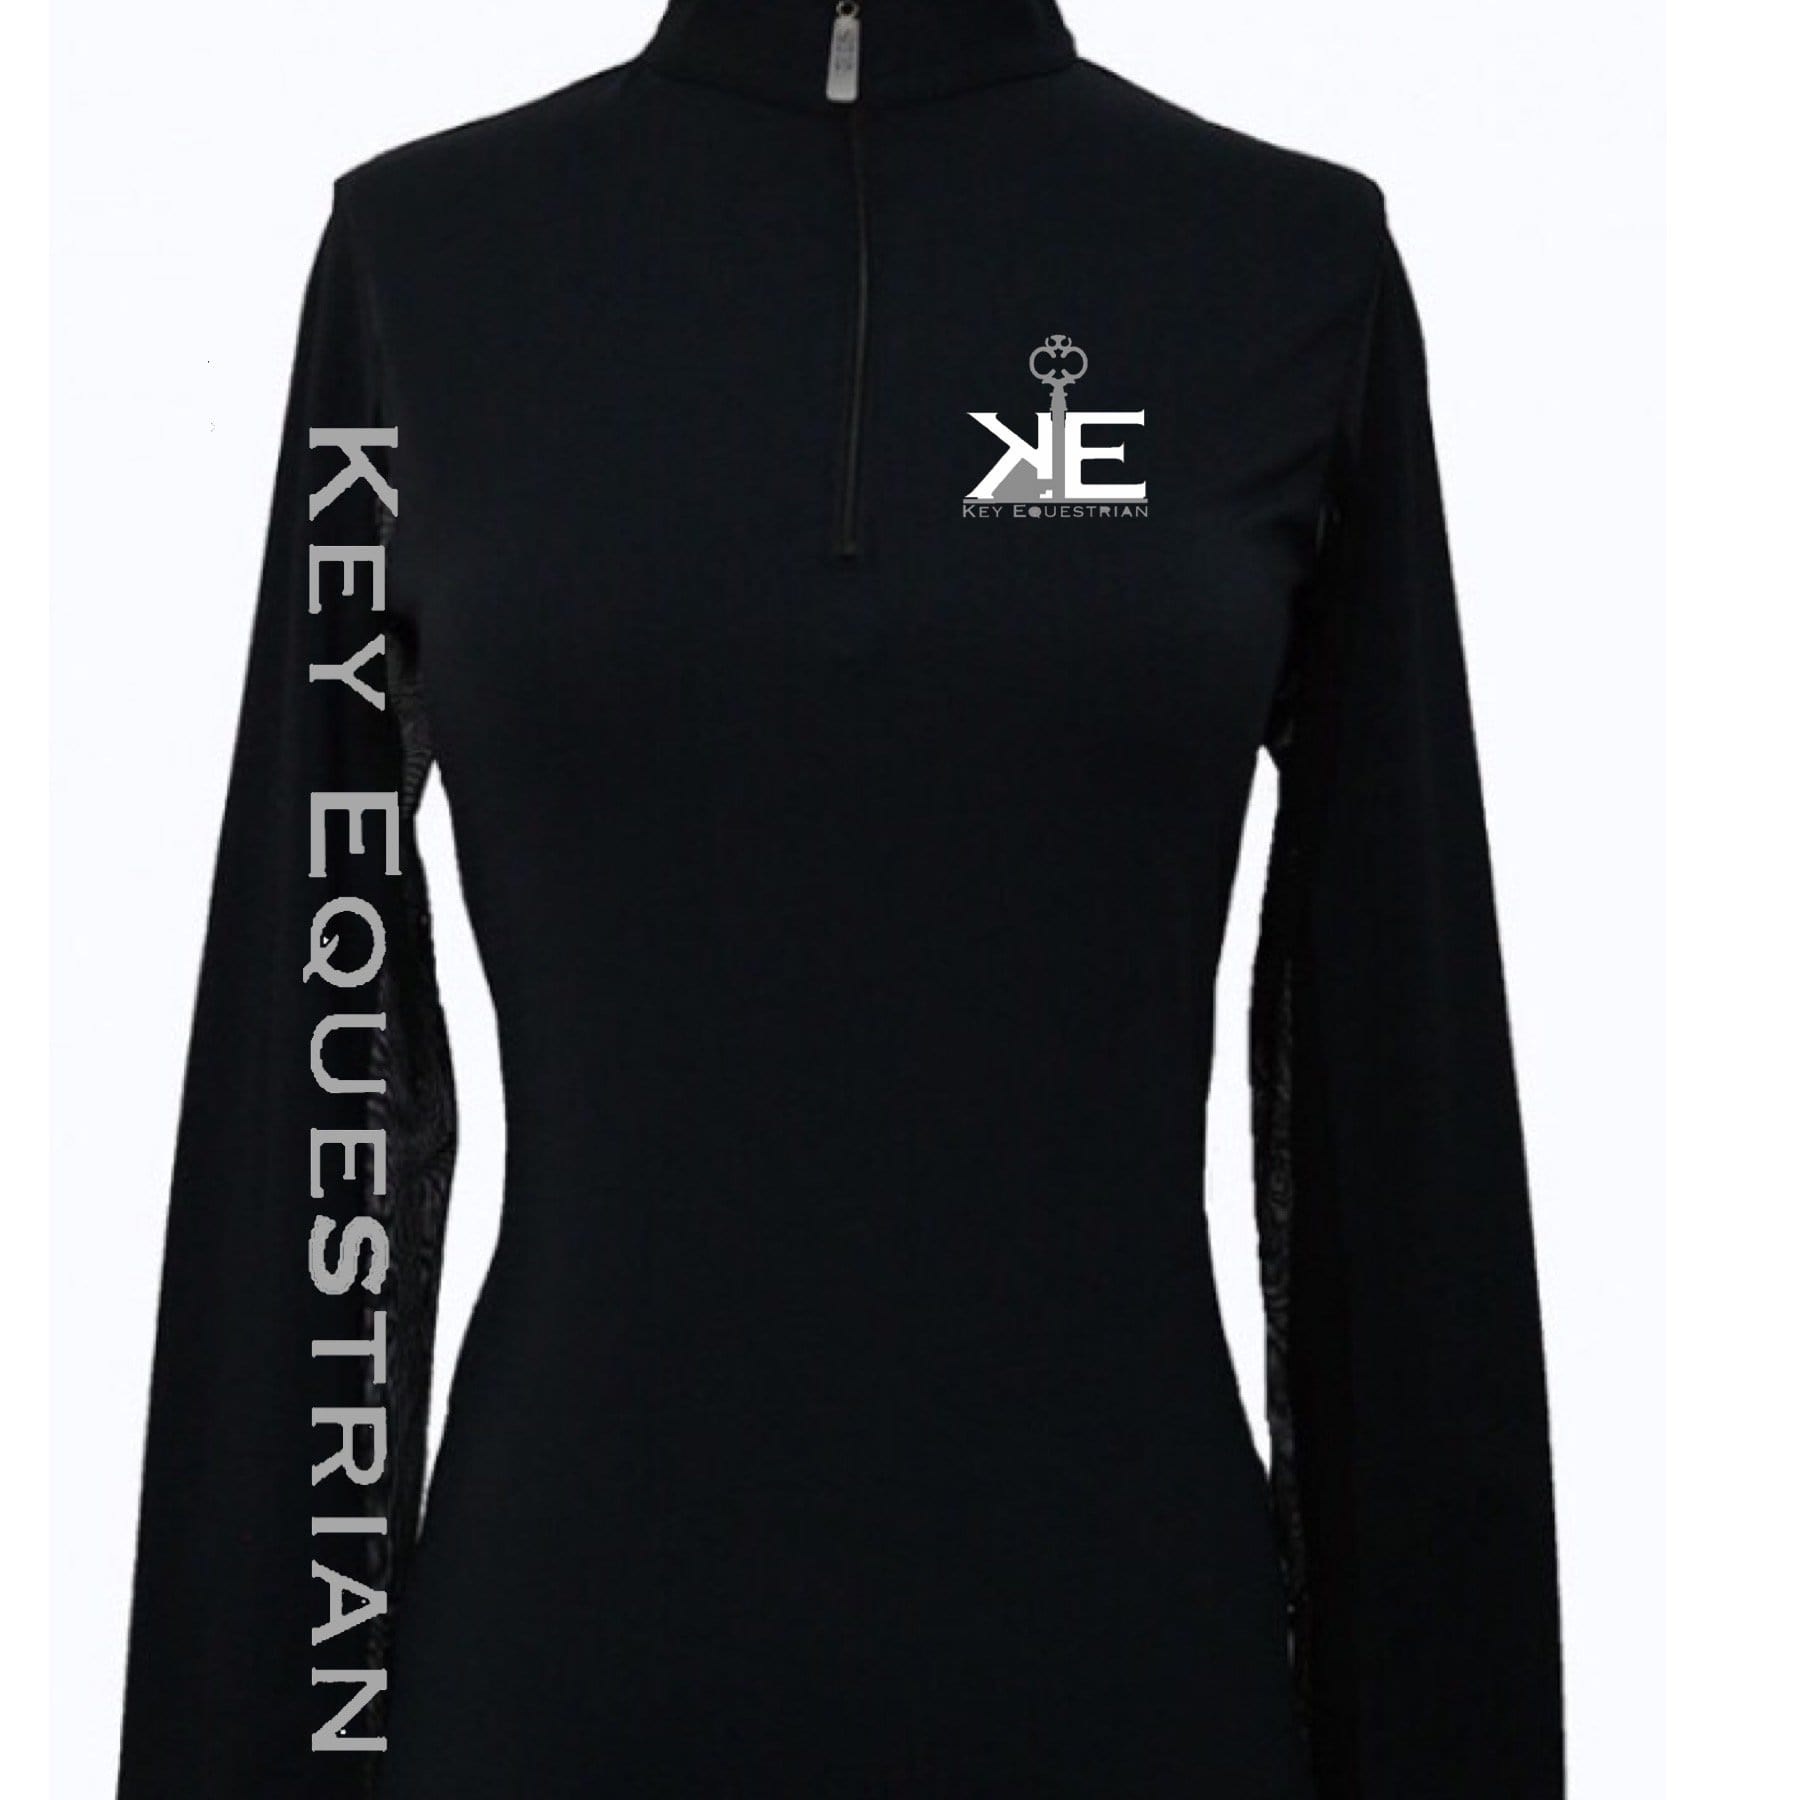 Equestrian Team Apparel Custom Team Shirts Key Equestrian Sunshirt equestrian team apparel online tack store mobile tack store custom farm apparel custom show stable clothing equestrian lifestyle horse show clothing riding clothes horses equestrian tack store